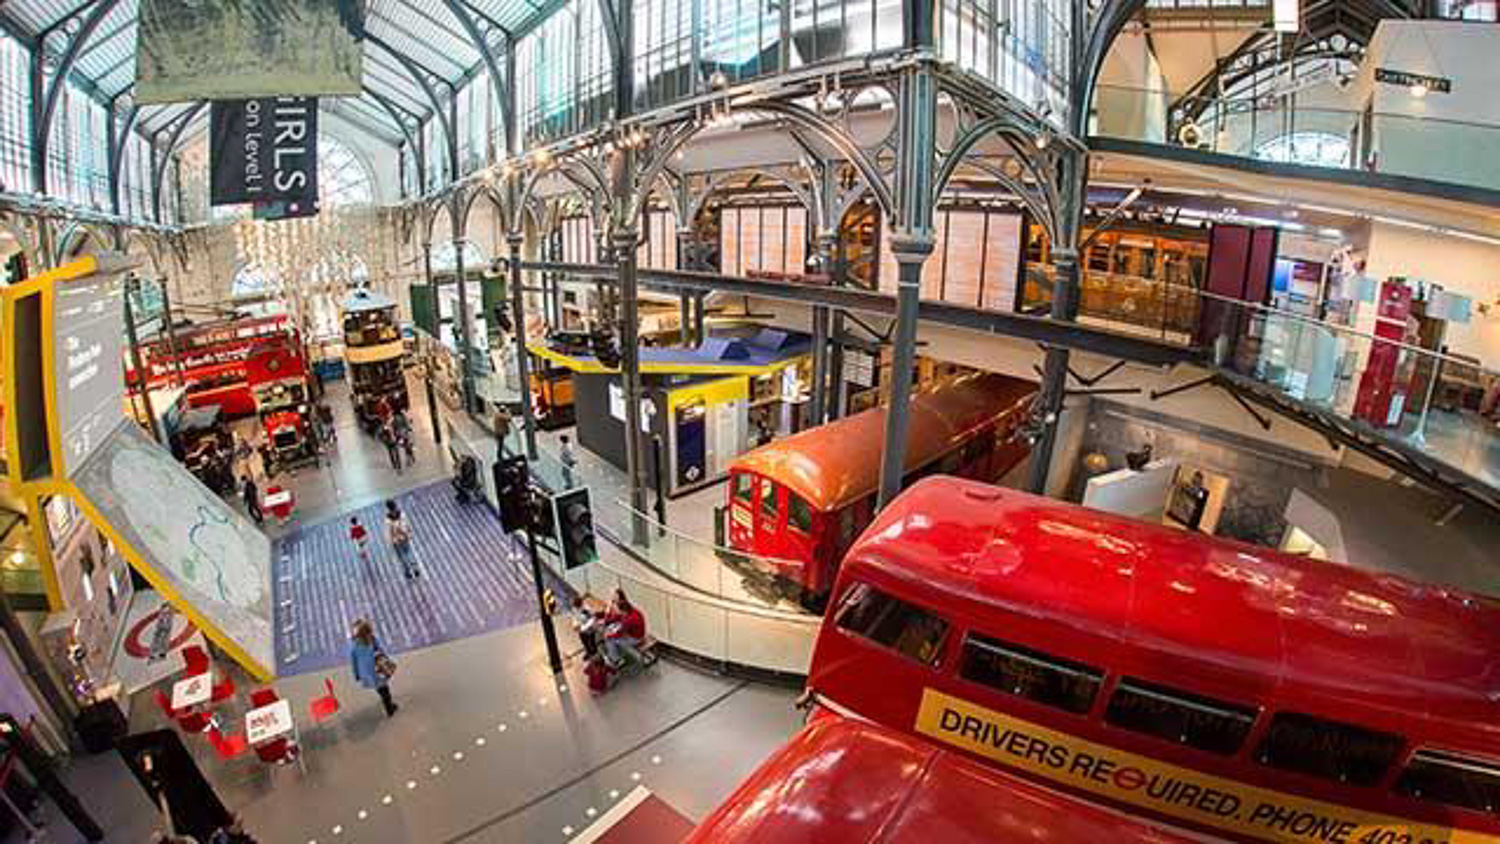 The London Transport Museum is fun for the whole family and one of the best London museums to visit with kids